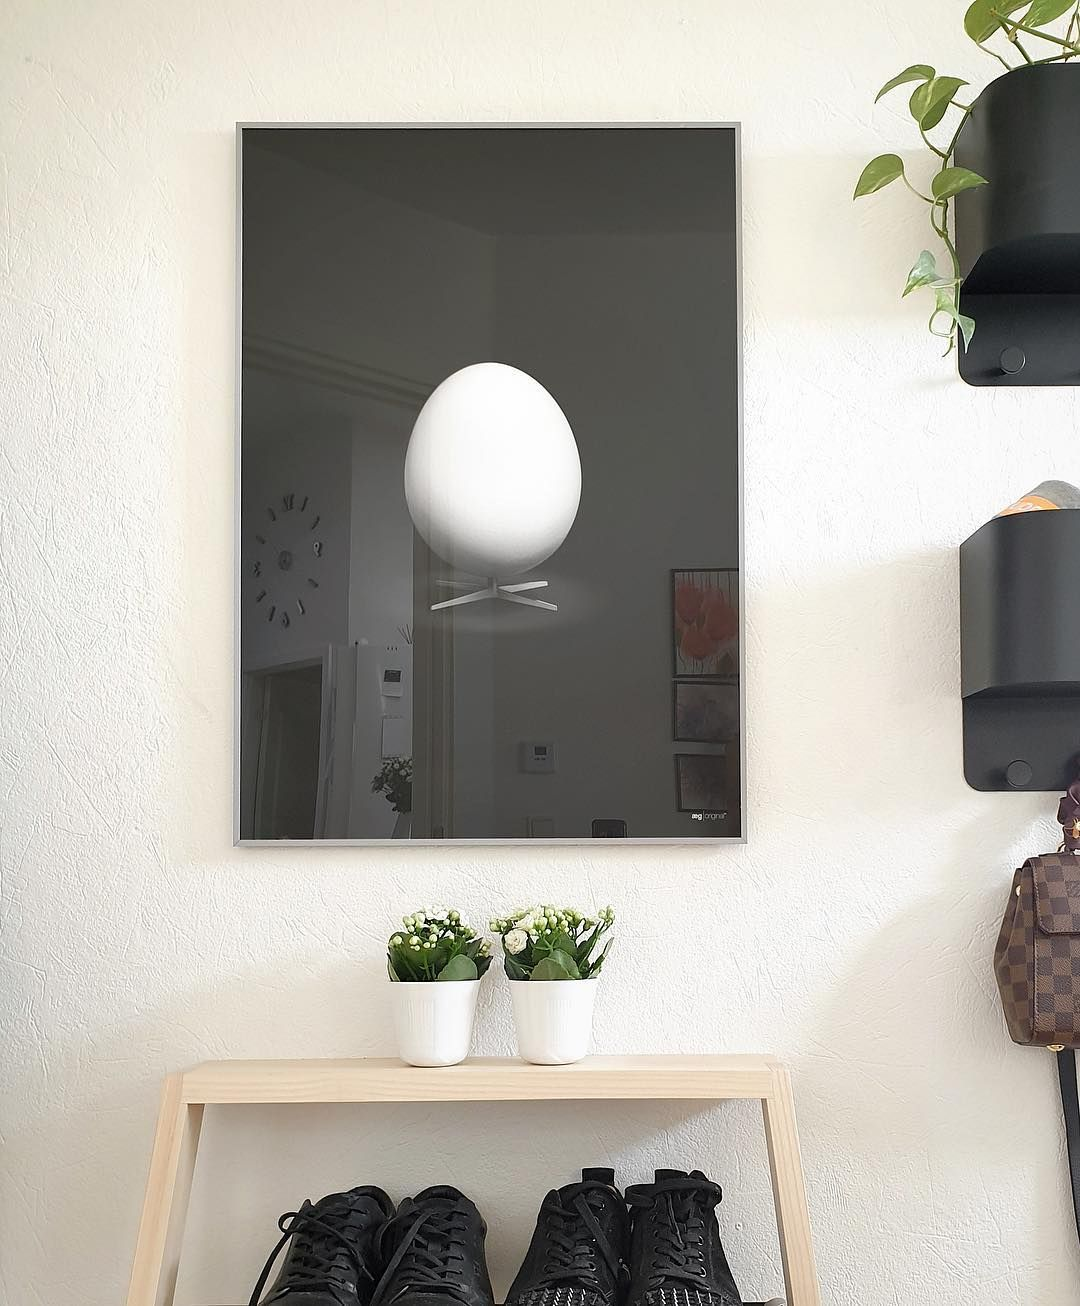 Aegget Brainchildoriginal Musthaveit Dk Danskdesign Danskemobelklassikere Aegget Koglen Svanen Brainchild Pla In 2020 Home Decor Bathroom Mirror Decor